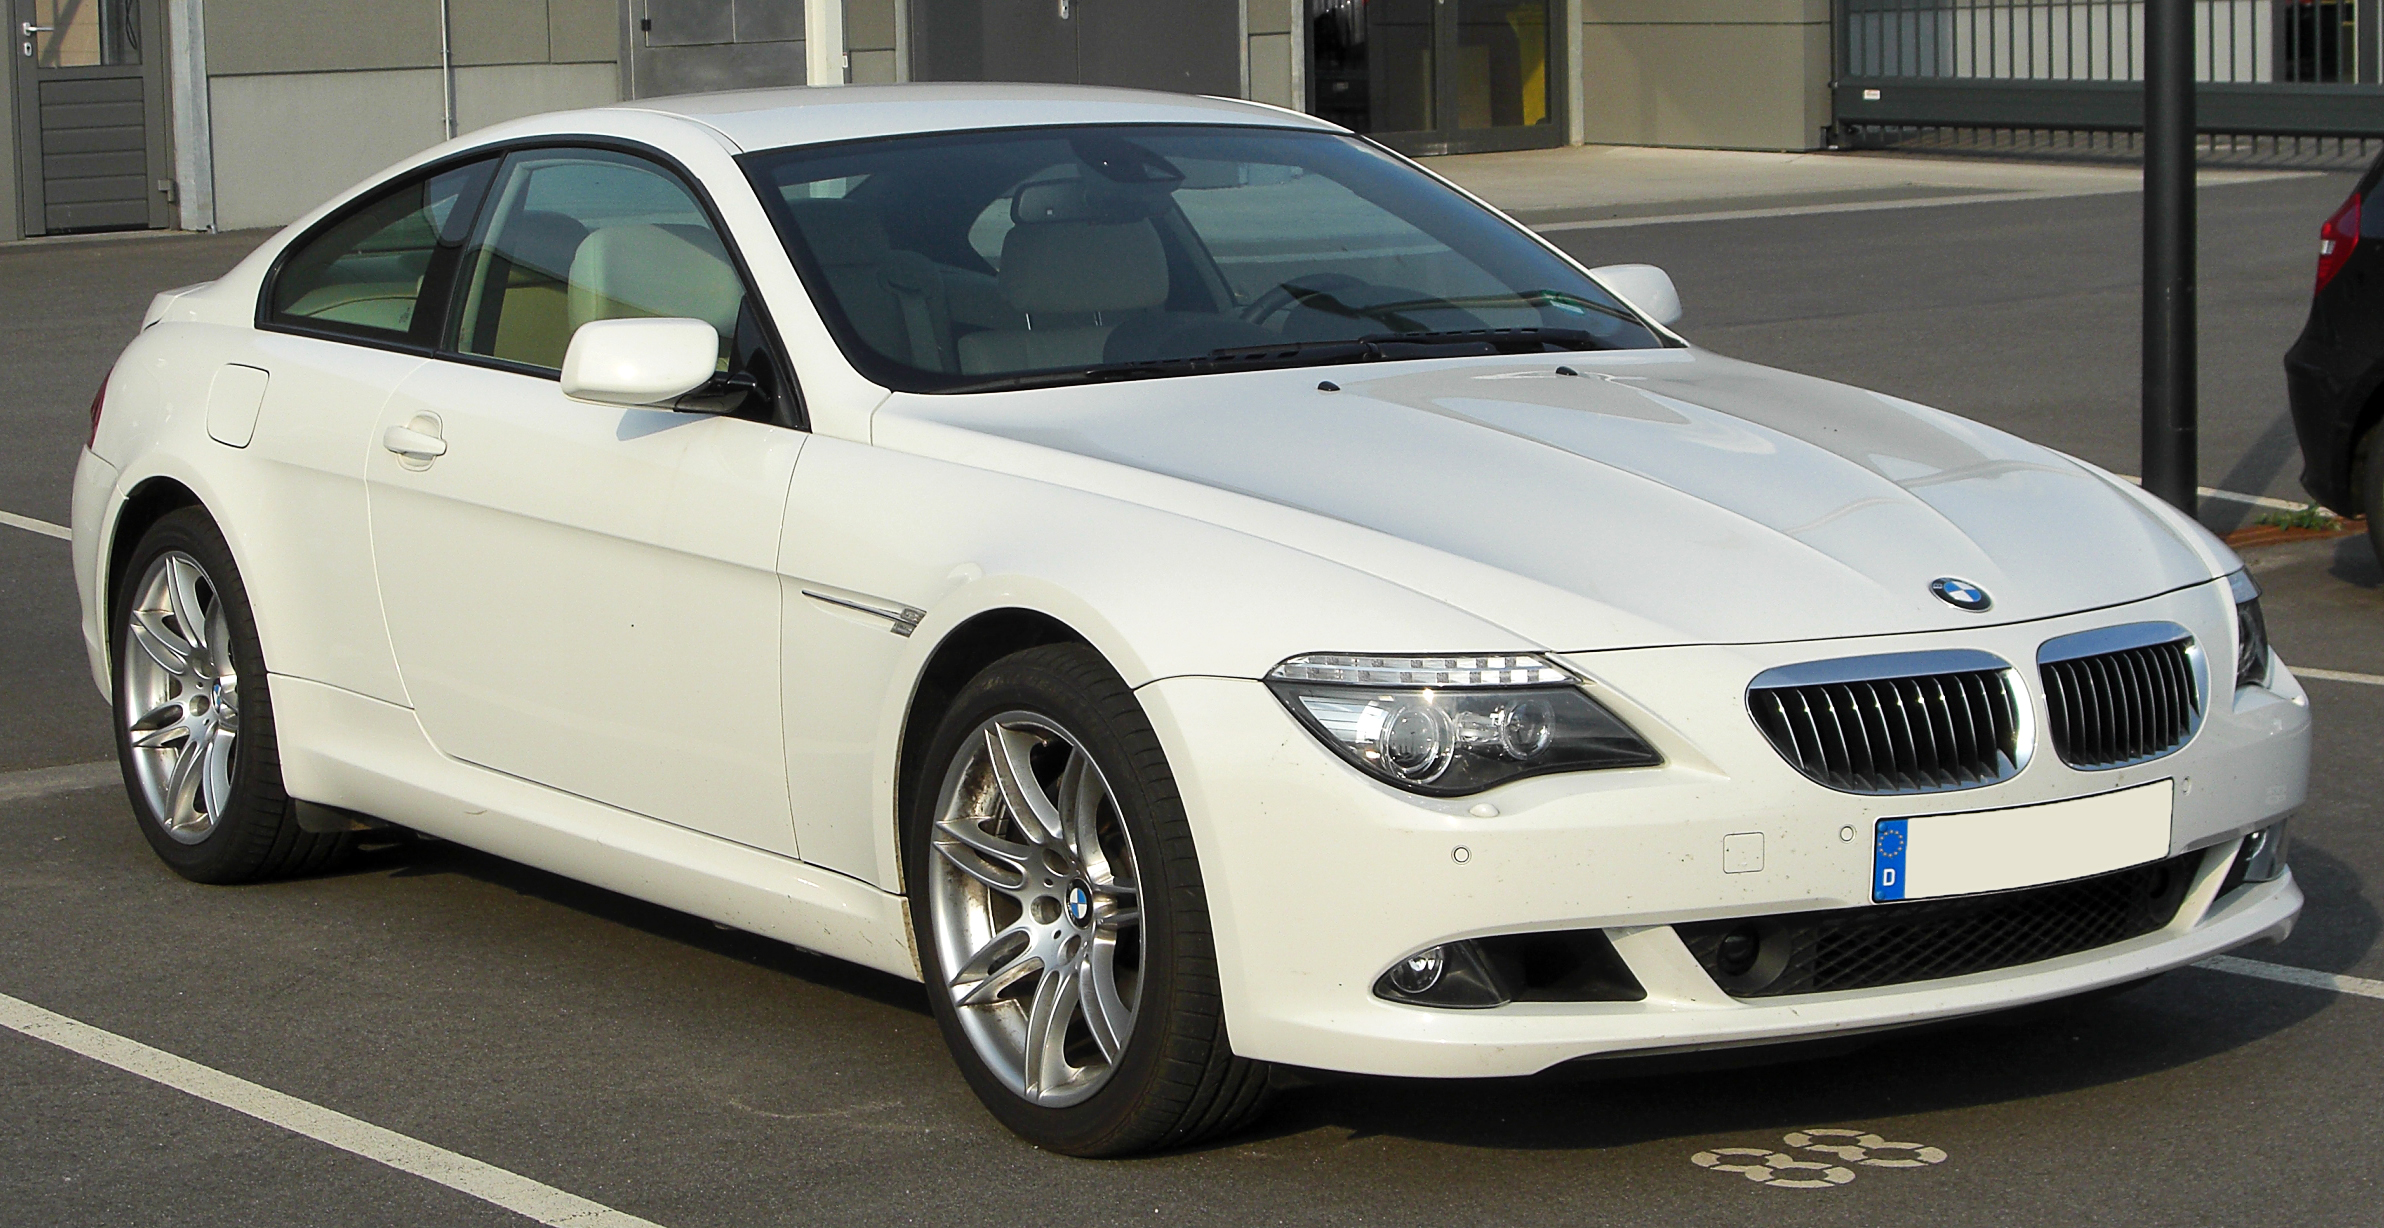 File Bmw 6er Coup 233 E63 Facelift Front 20100814 Jpg Wikimedia Commons